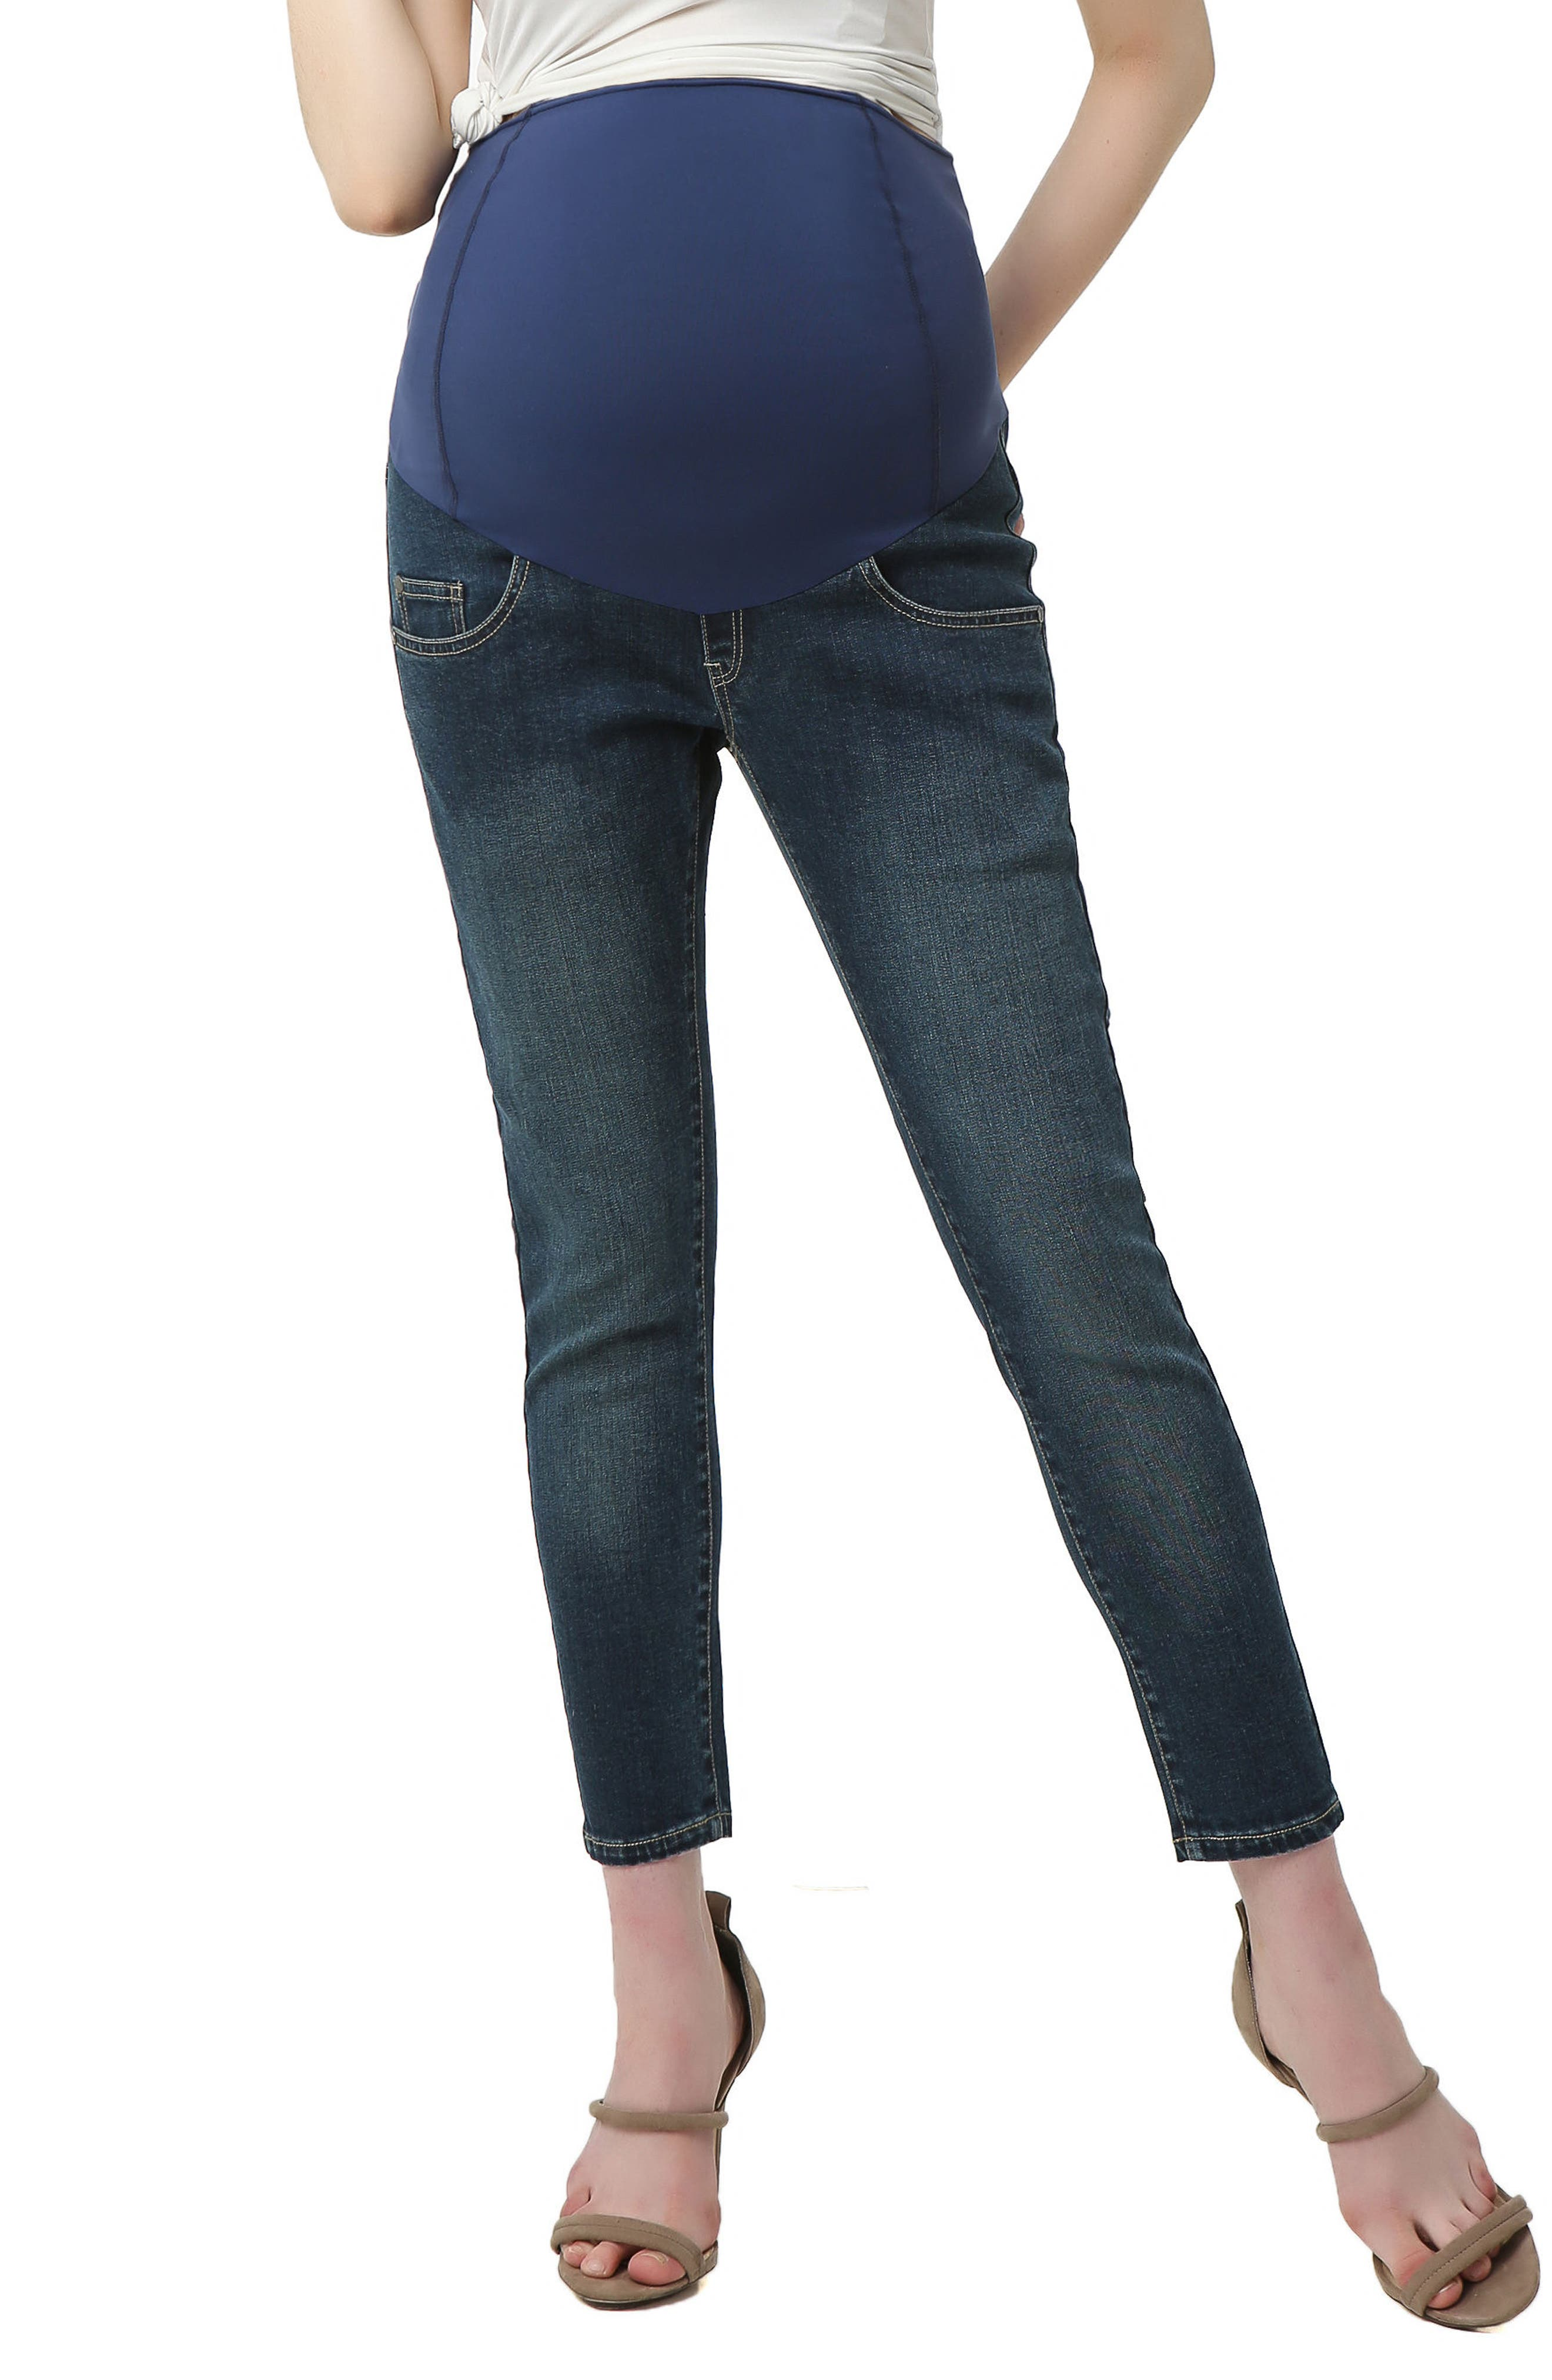 5fbb5a863cdf8 Women's Kimi And Kai Tara Crop Maternity Skinny Jeans